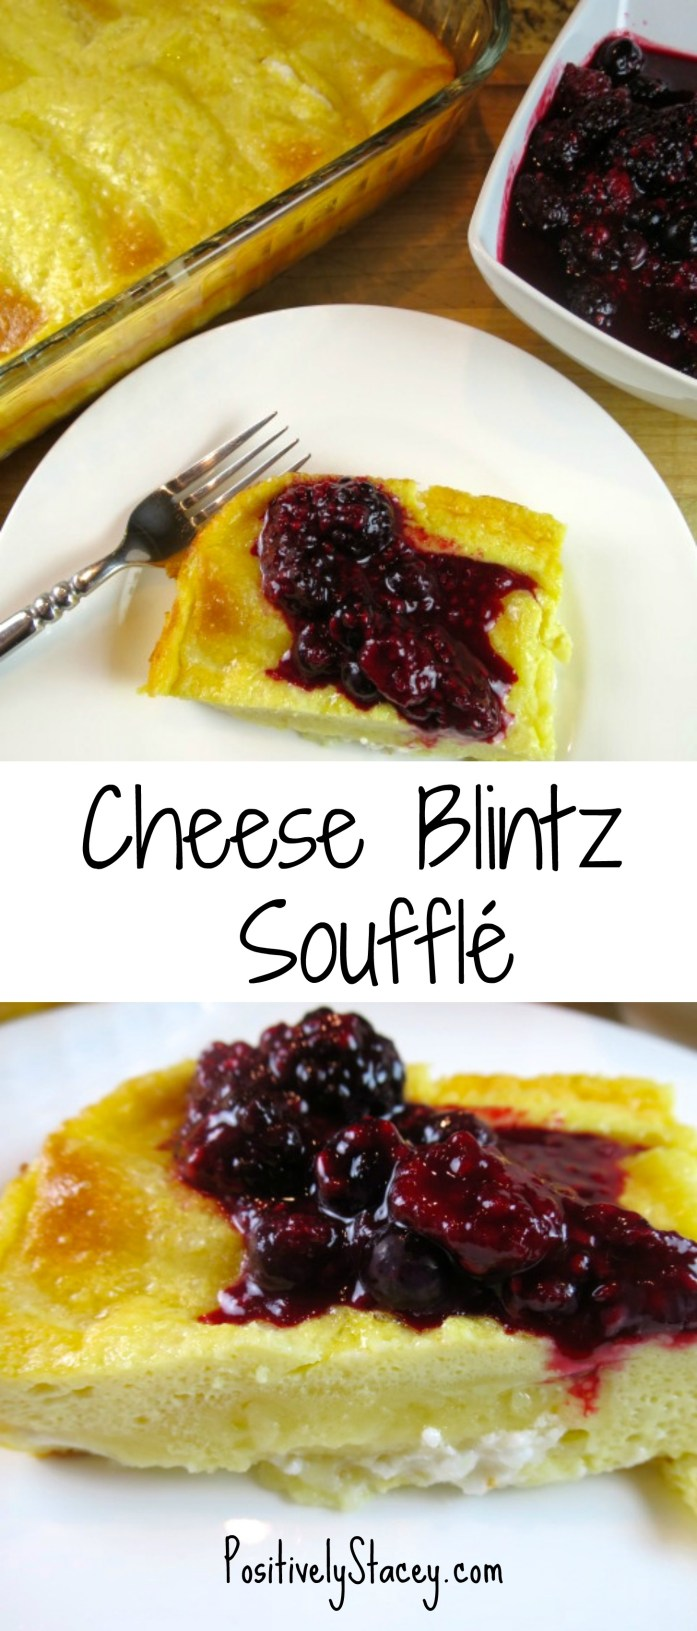 Oh, la, la, these pillows of cheese, vanilla, and crêpes are oh so light, sweet, and absolutely delicious! The Cheese Blintz Soufflé recipe is super easy!